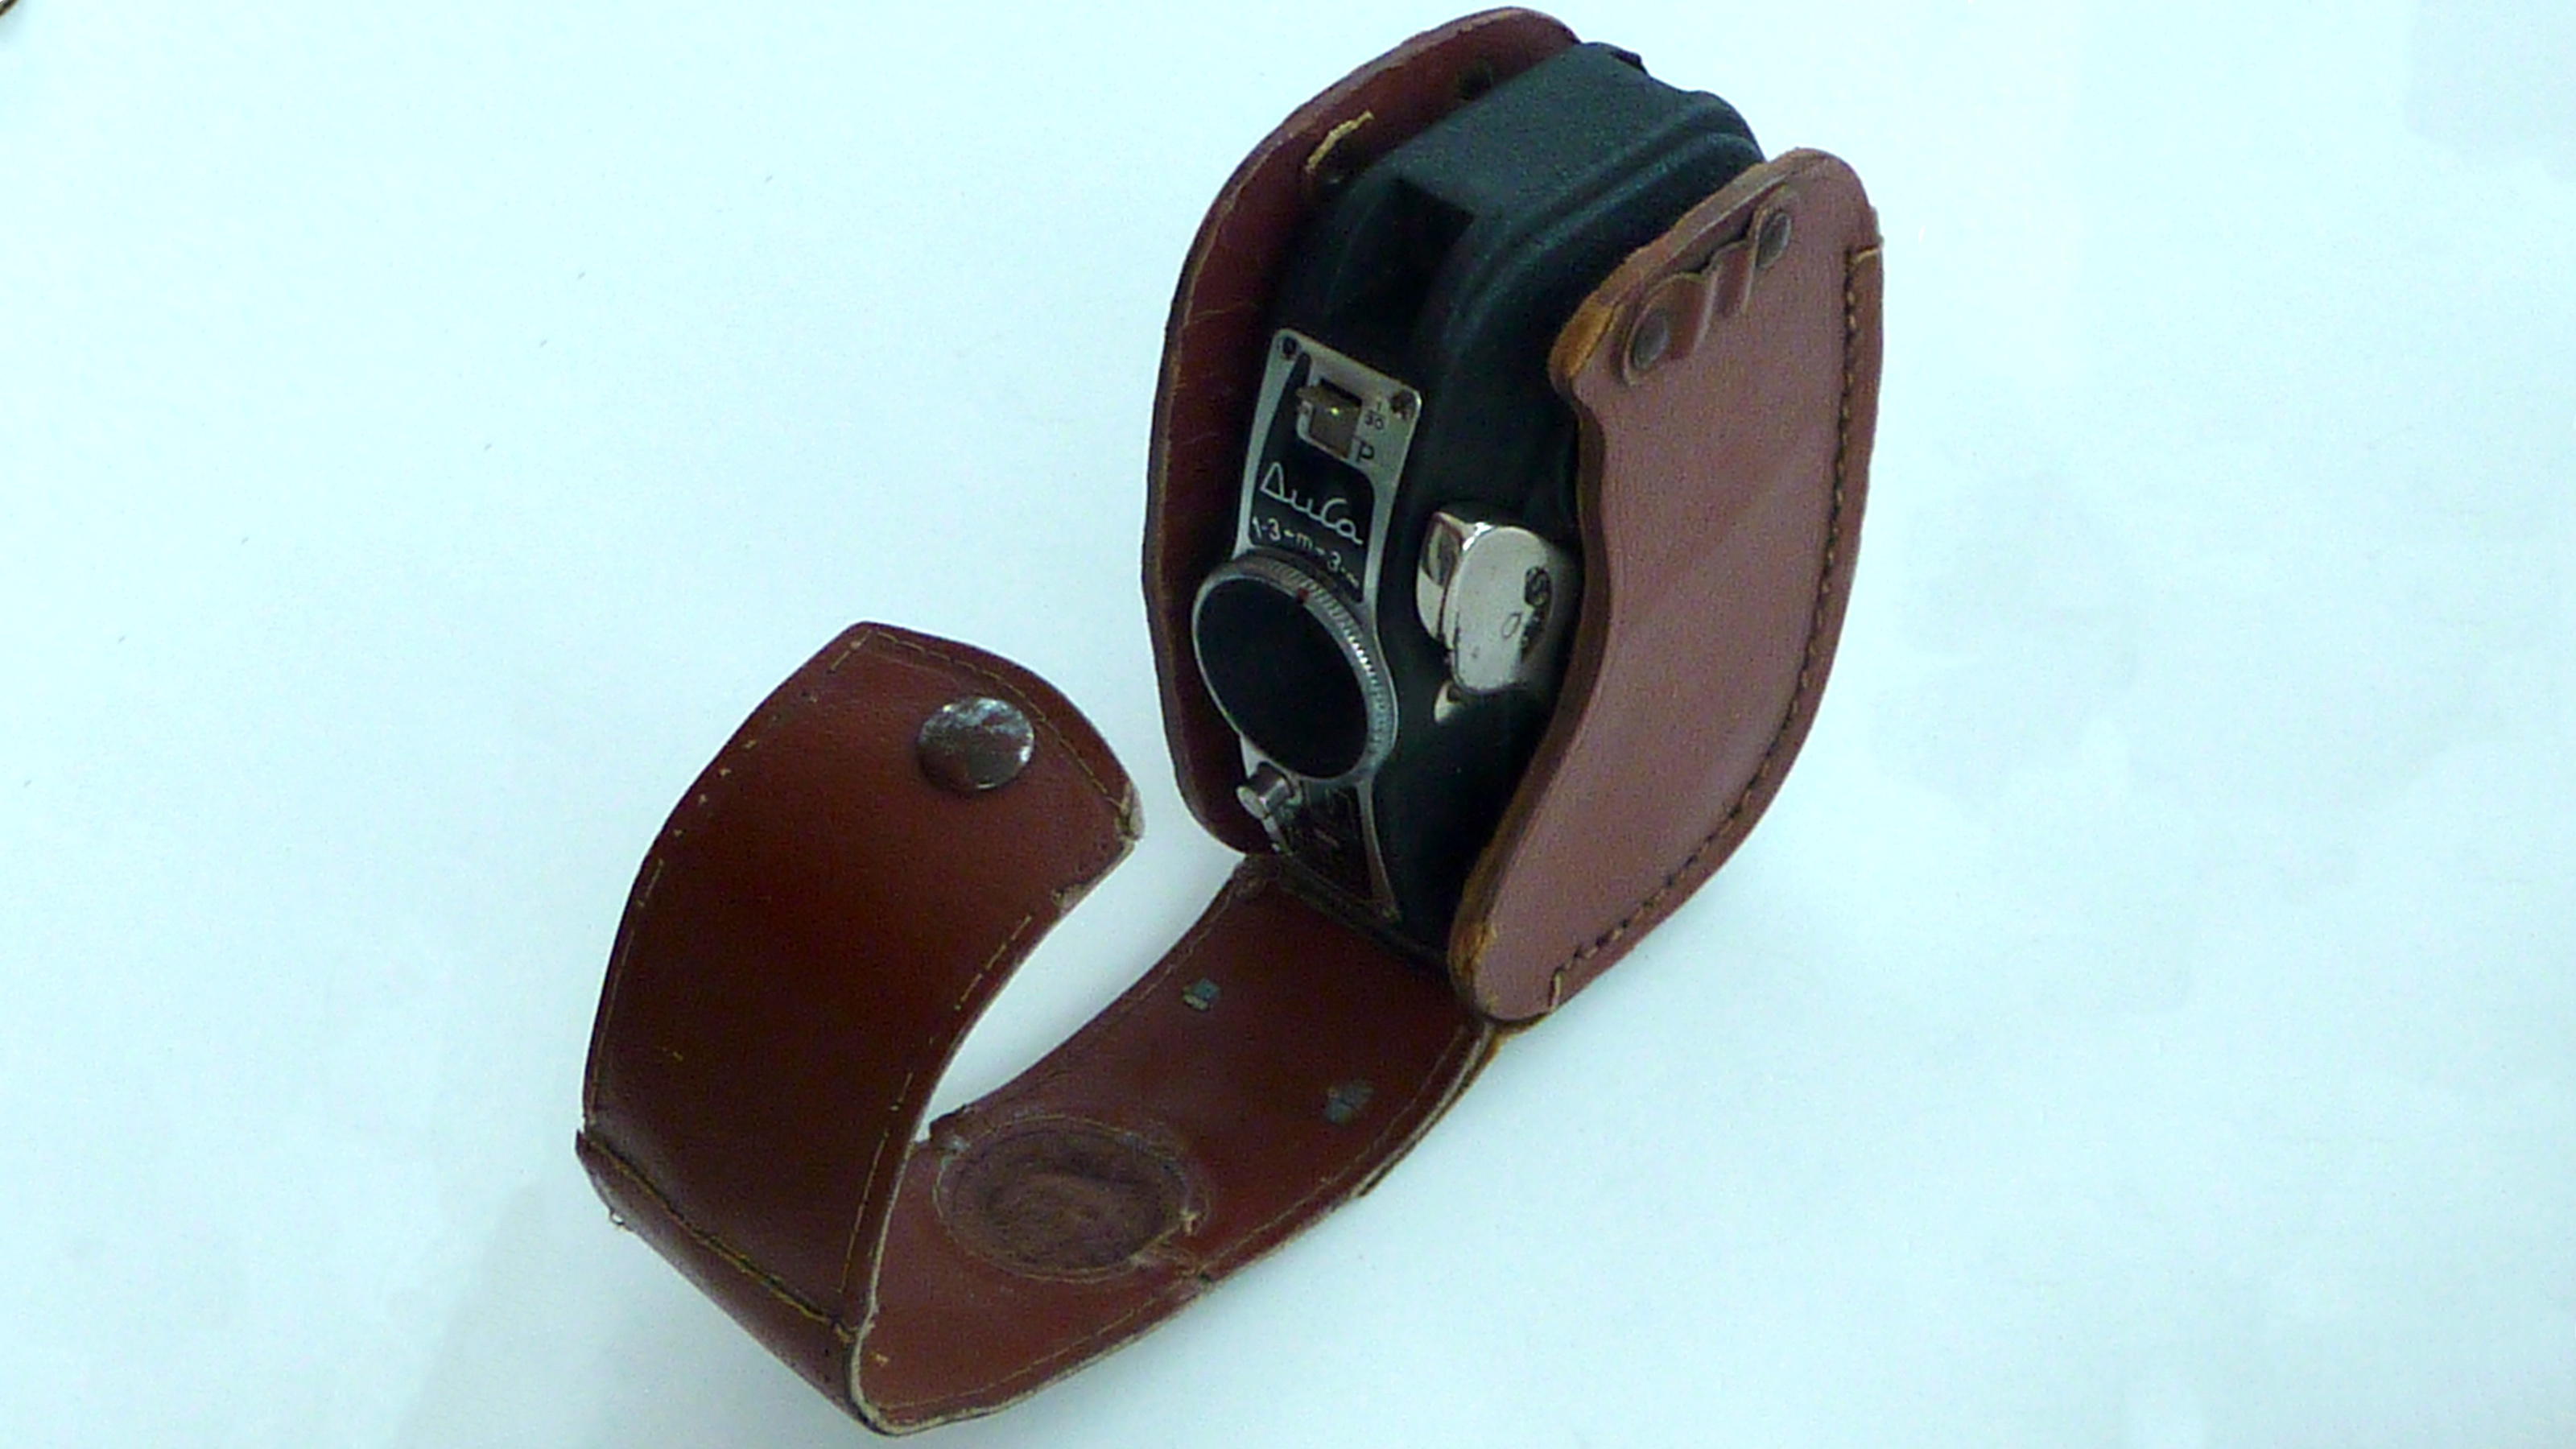 The Durst Duca camera in its leather case